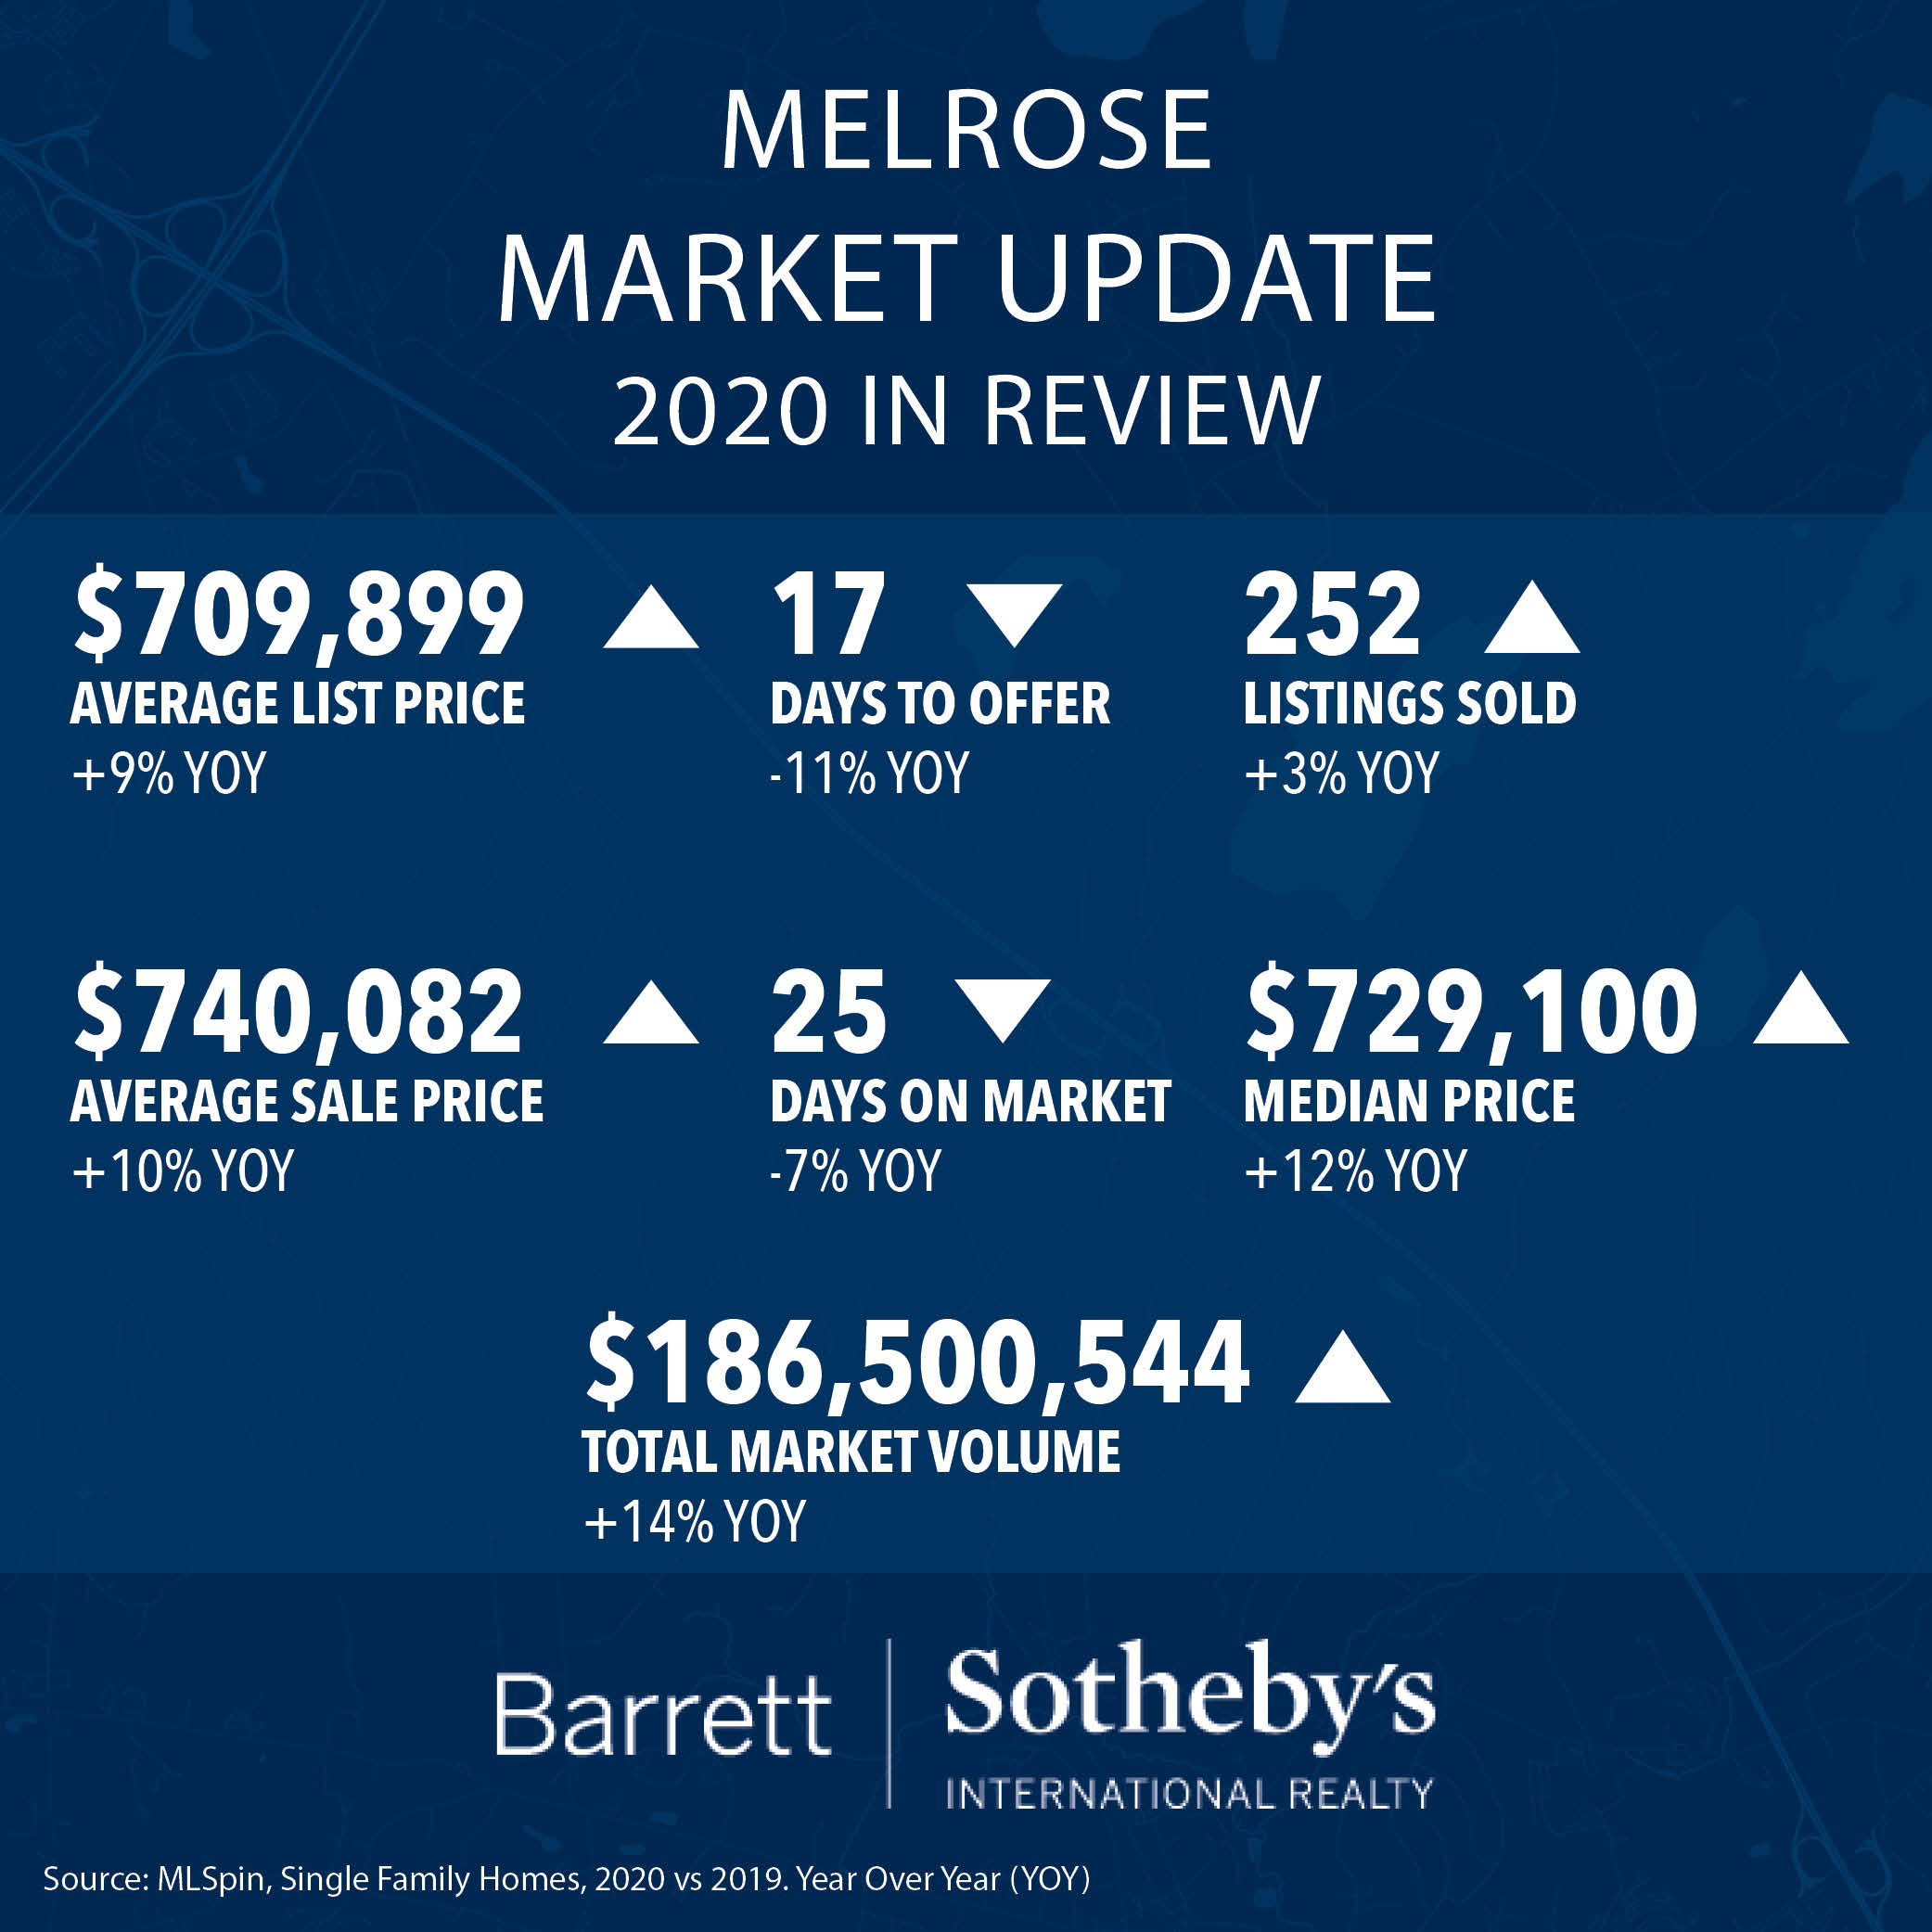 Melrose Market Update: 2020 in Review